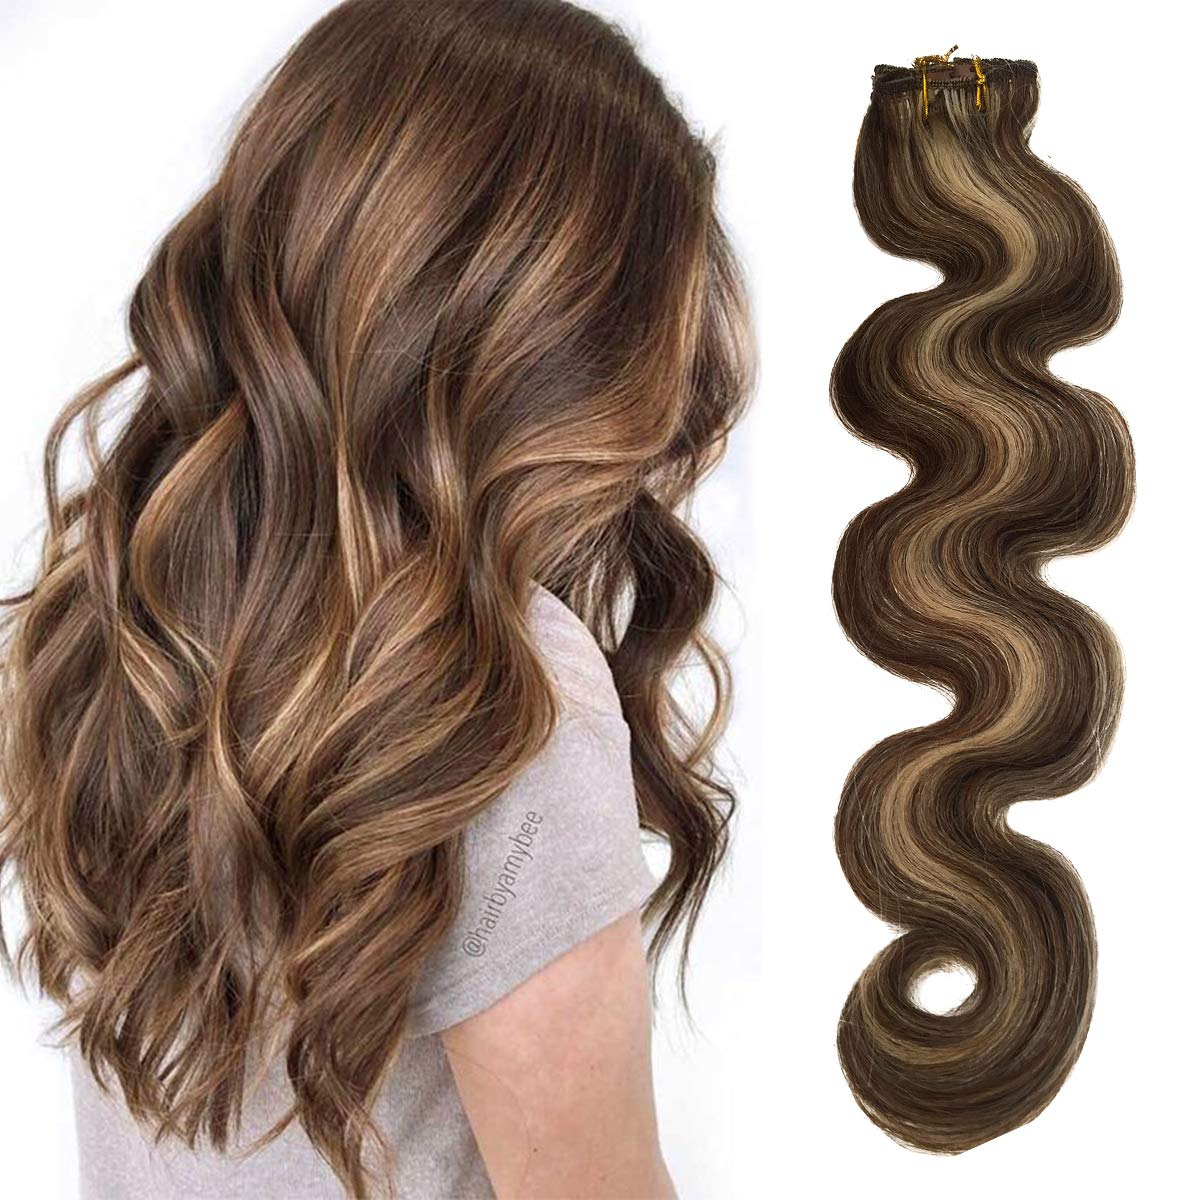 Wavy Clip in Hair Finally popular brand Extensions Human to Blond Chocolate Brown Popular brand